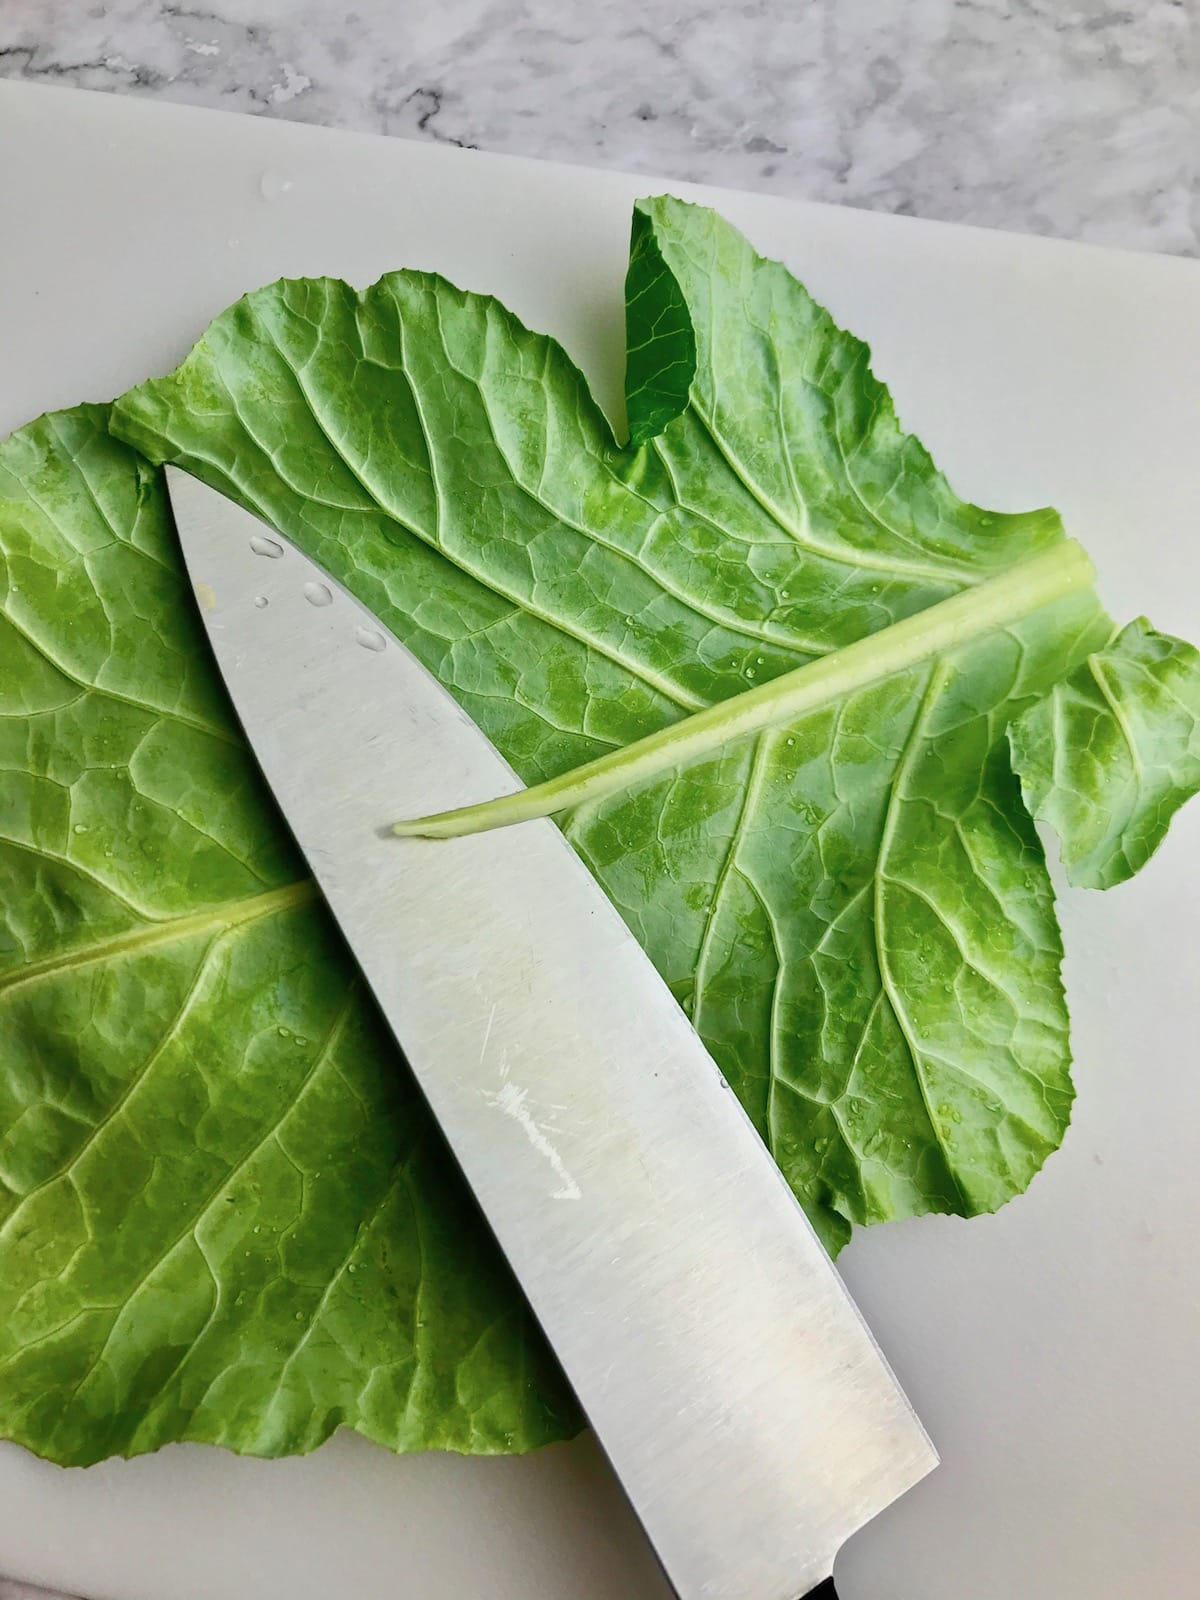 A knife slicing off the stem along the center of a collard leaf.